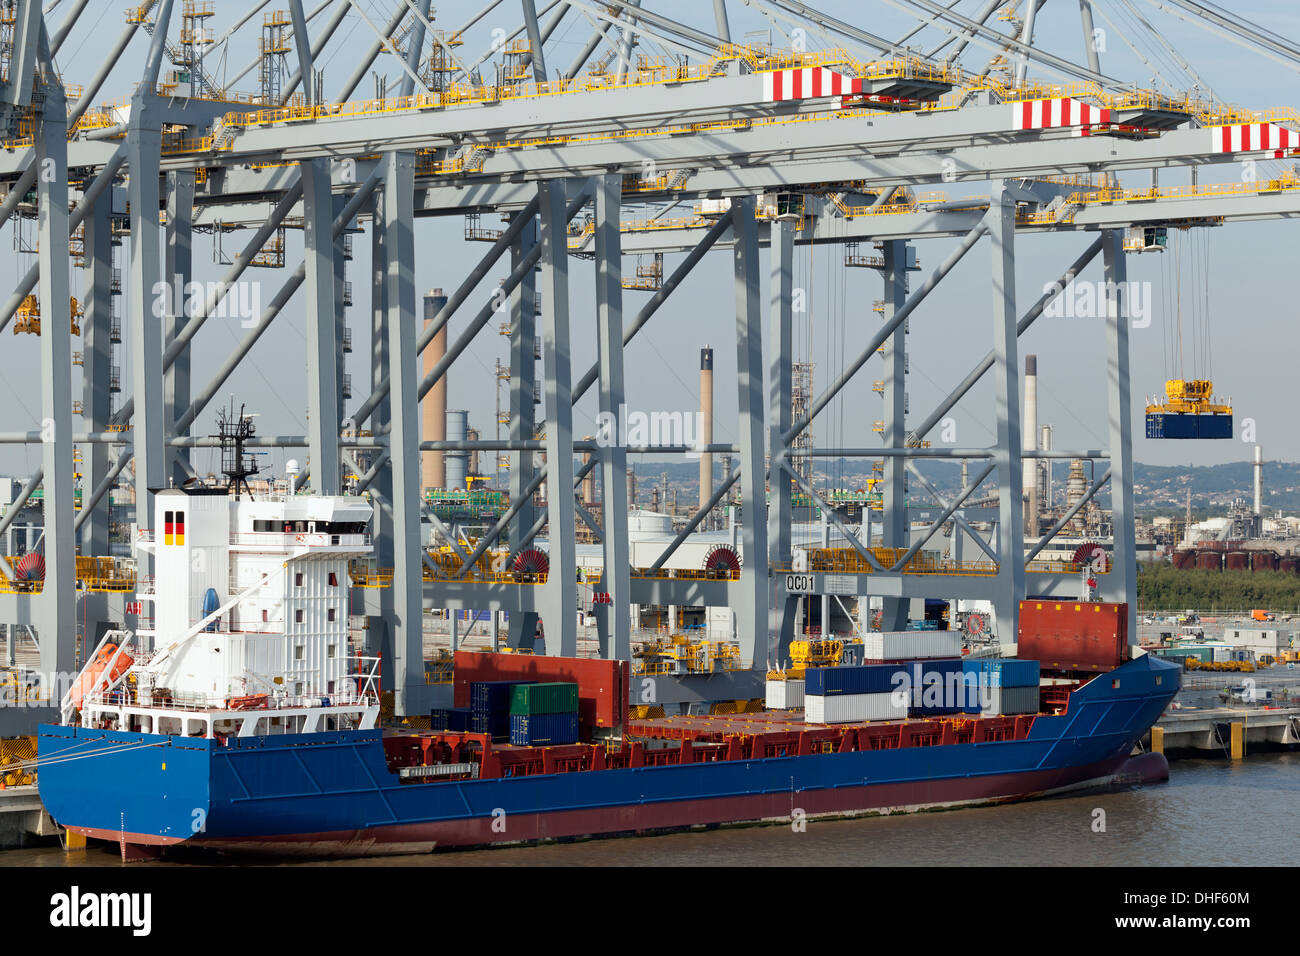 Container vessel at the new London Gateway Port, England - Stock Image